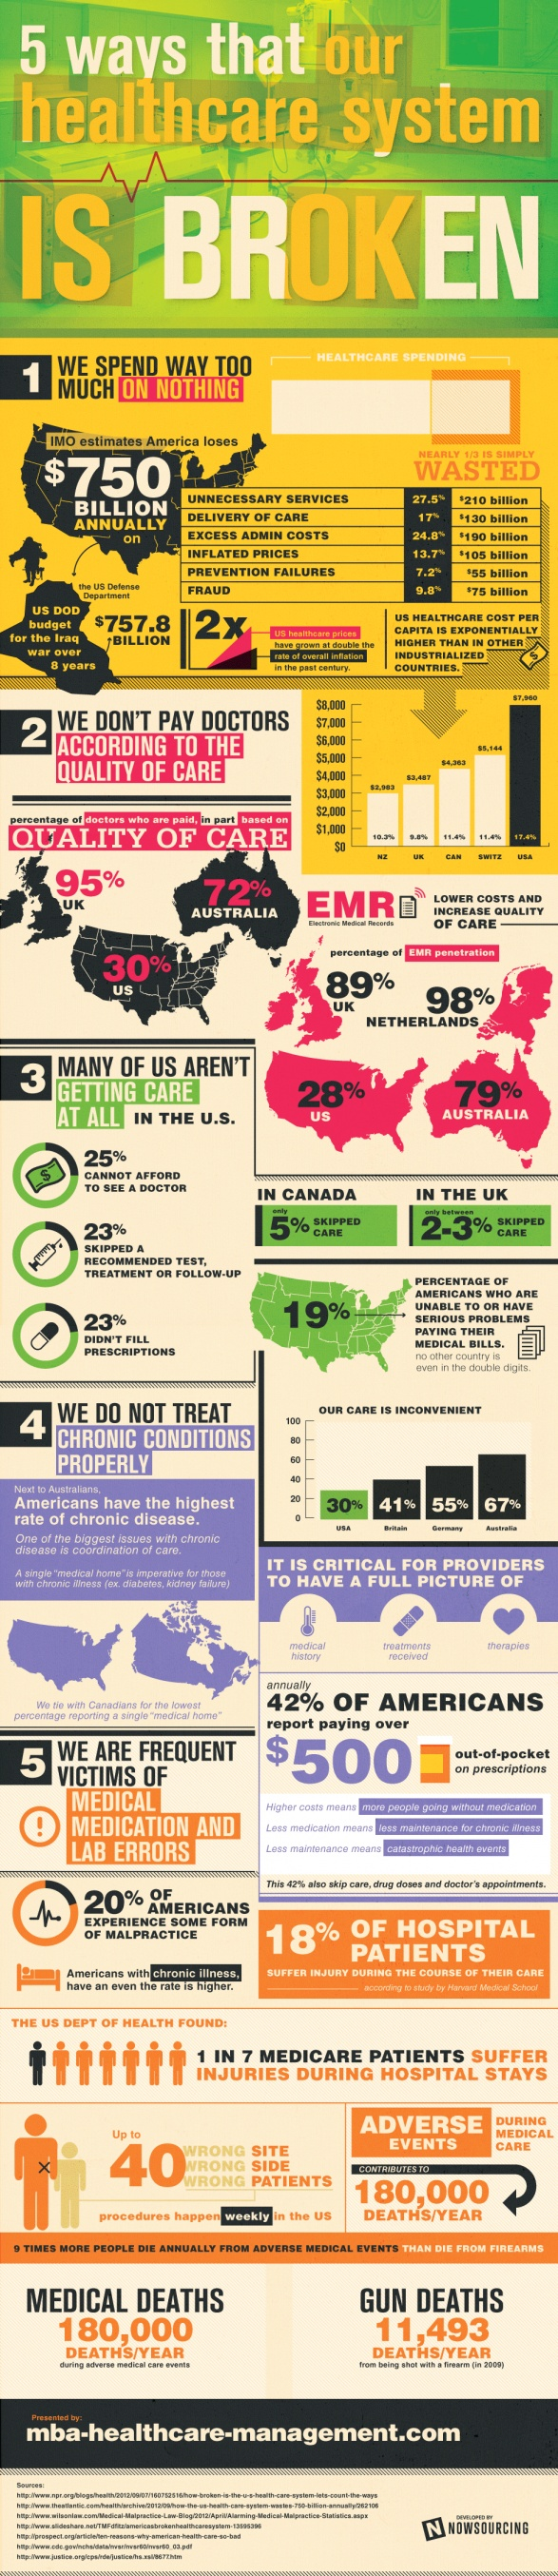 Five Ways That Our Healthcare System is Broken | #infographic